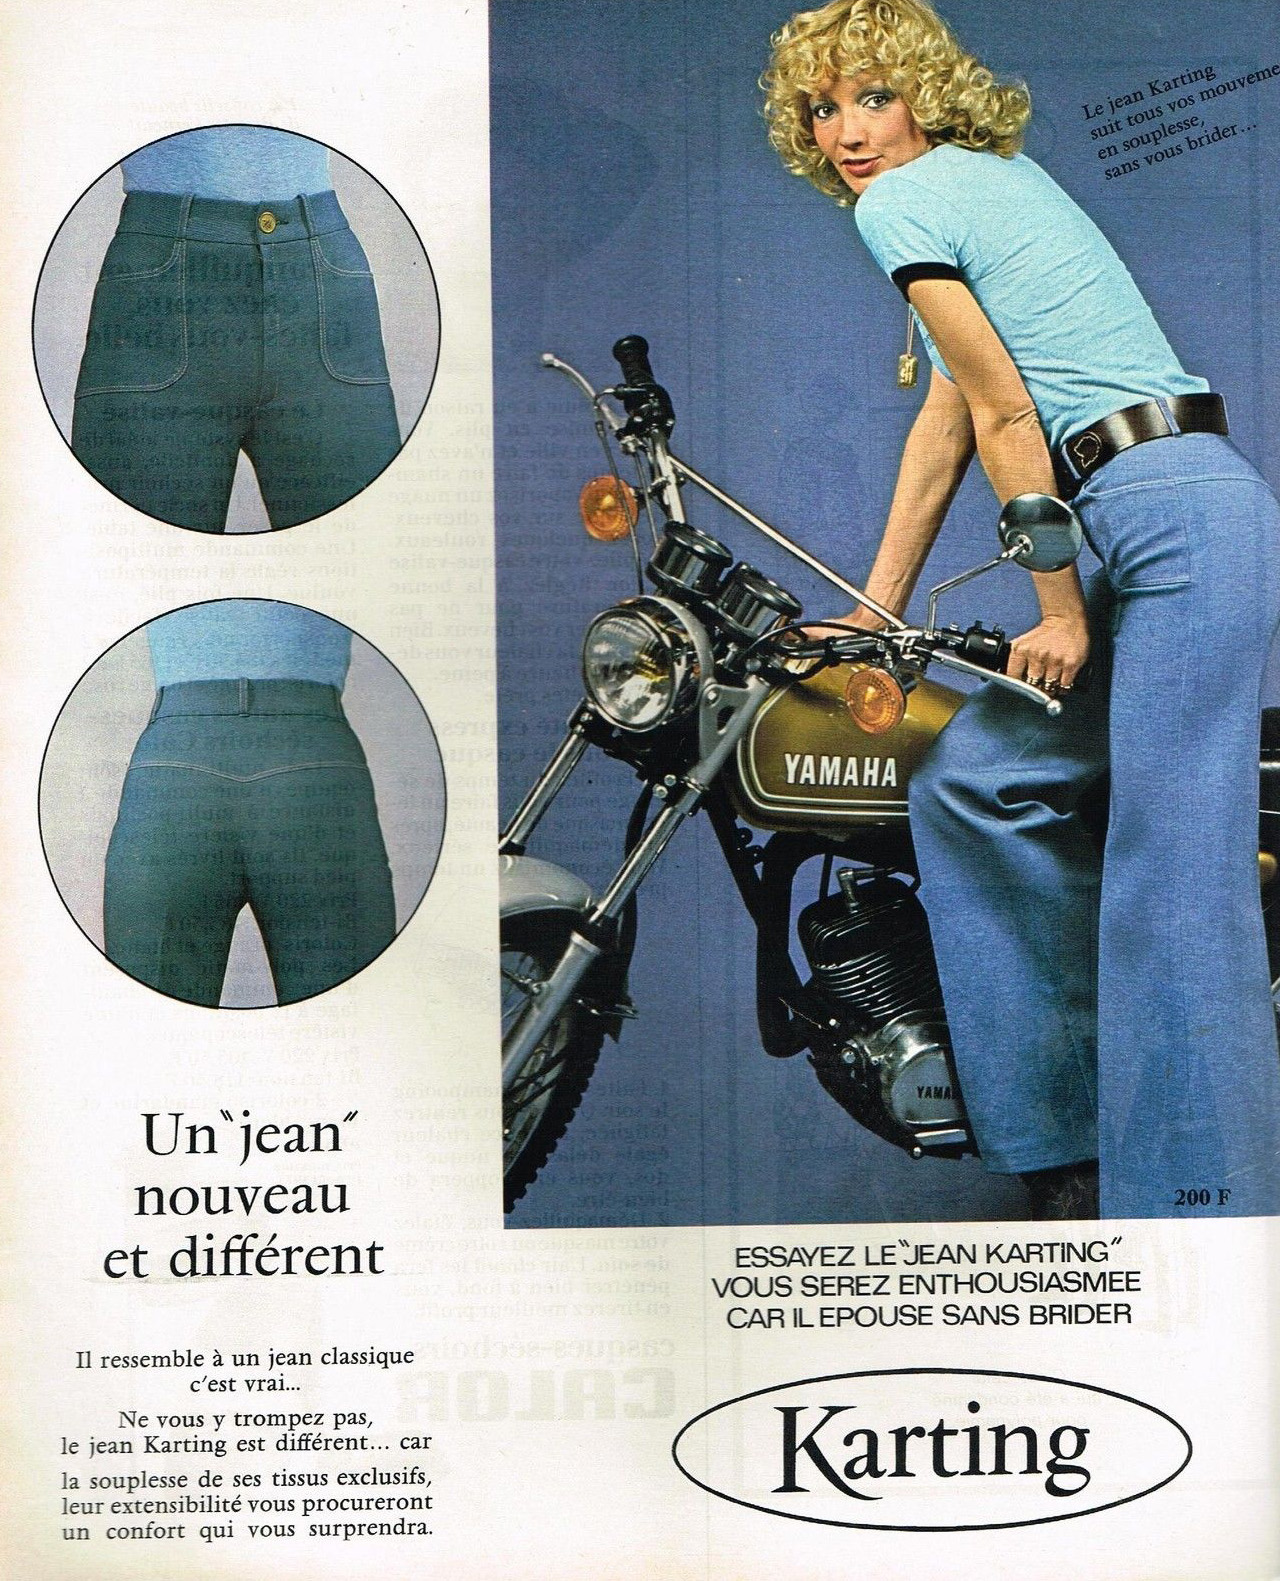 Decade of Denim: Jeans Ads and Fashions from the 1970s